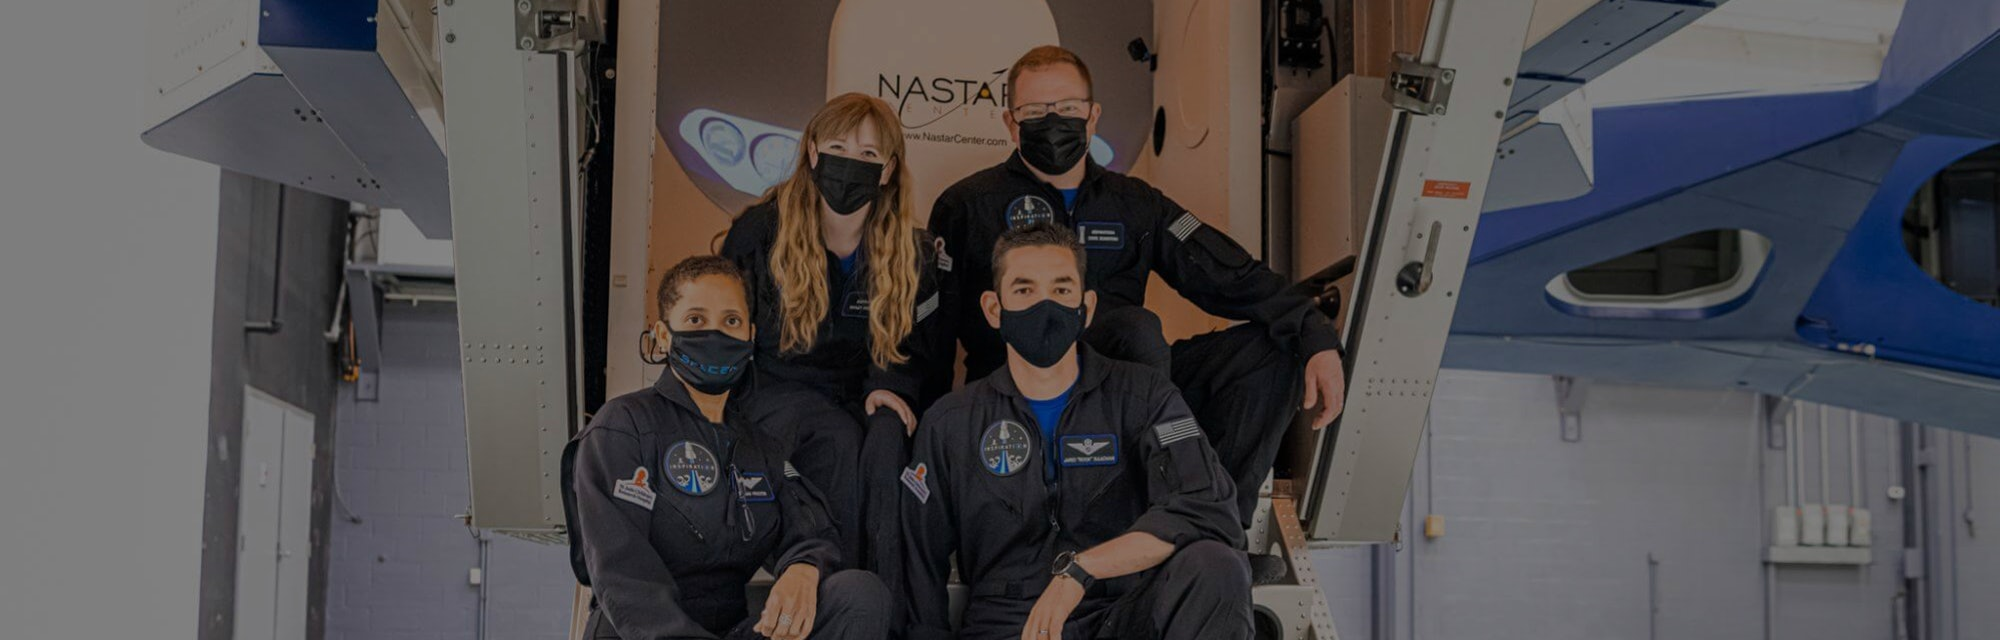 The four members of the Inspiration4 mission pose for a photo after centrifuge training.